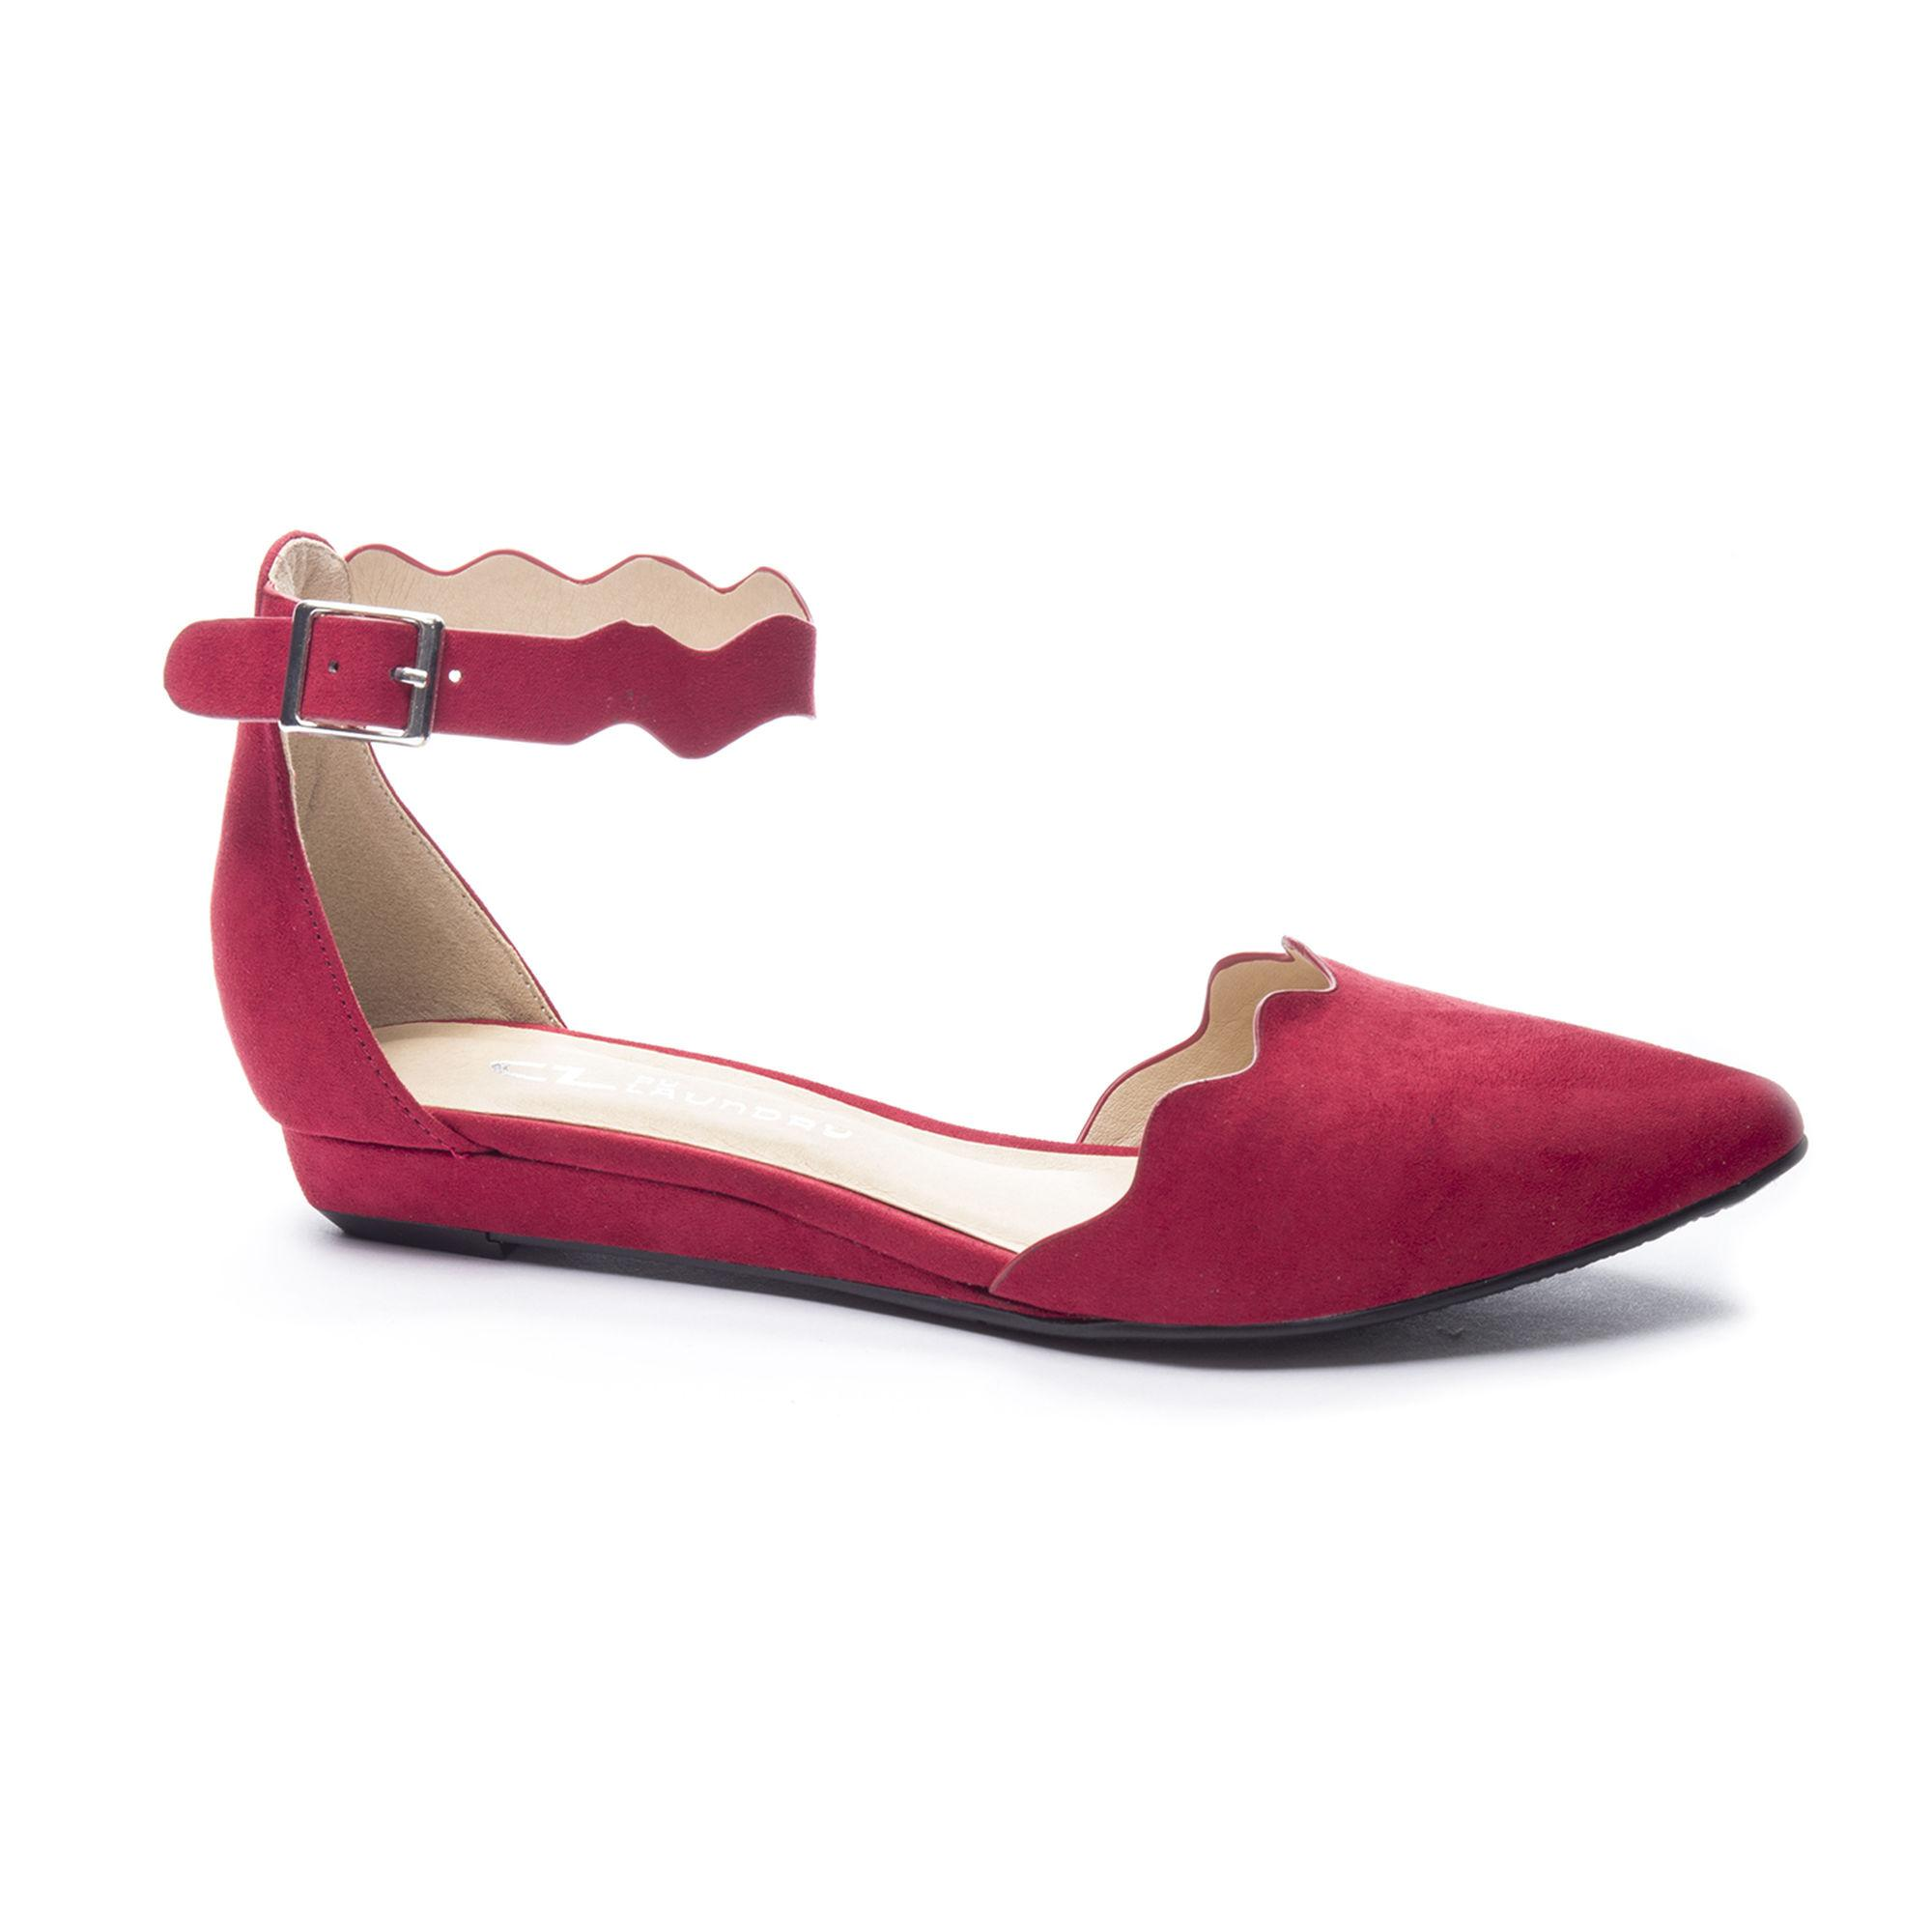 f1e32f4e7 Lyst - Chinese Laundry Studio D orsay Flat in Red